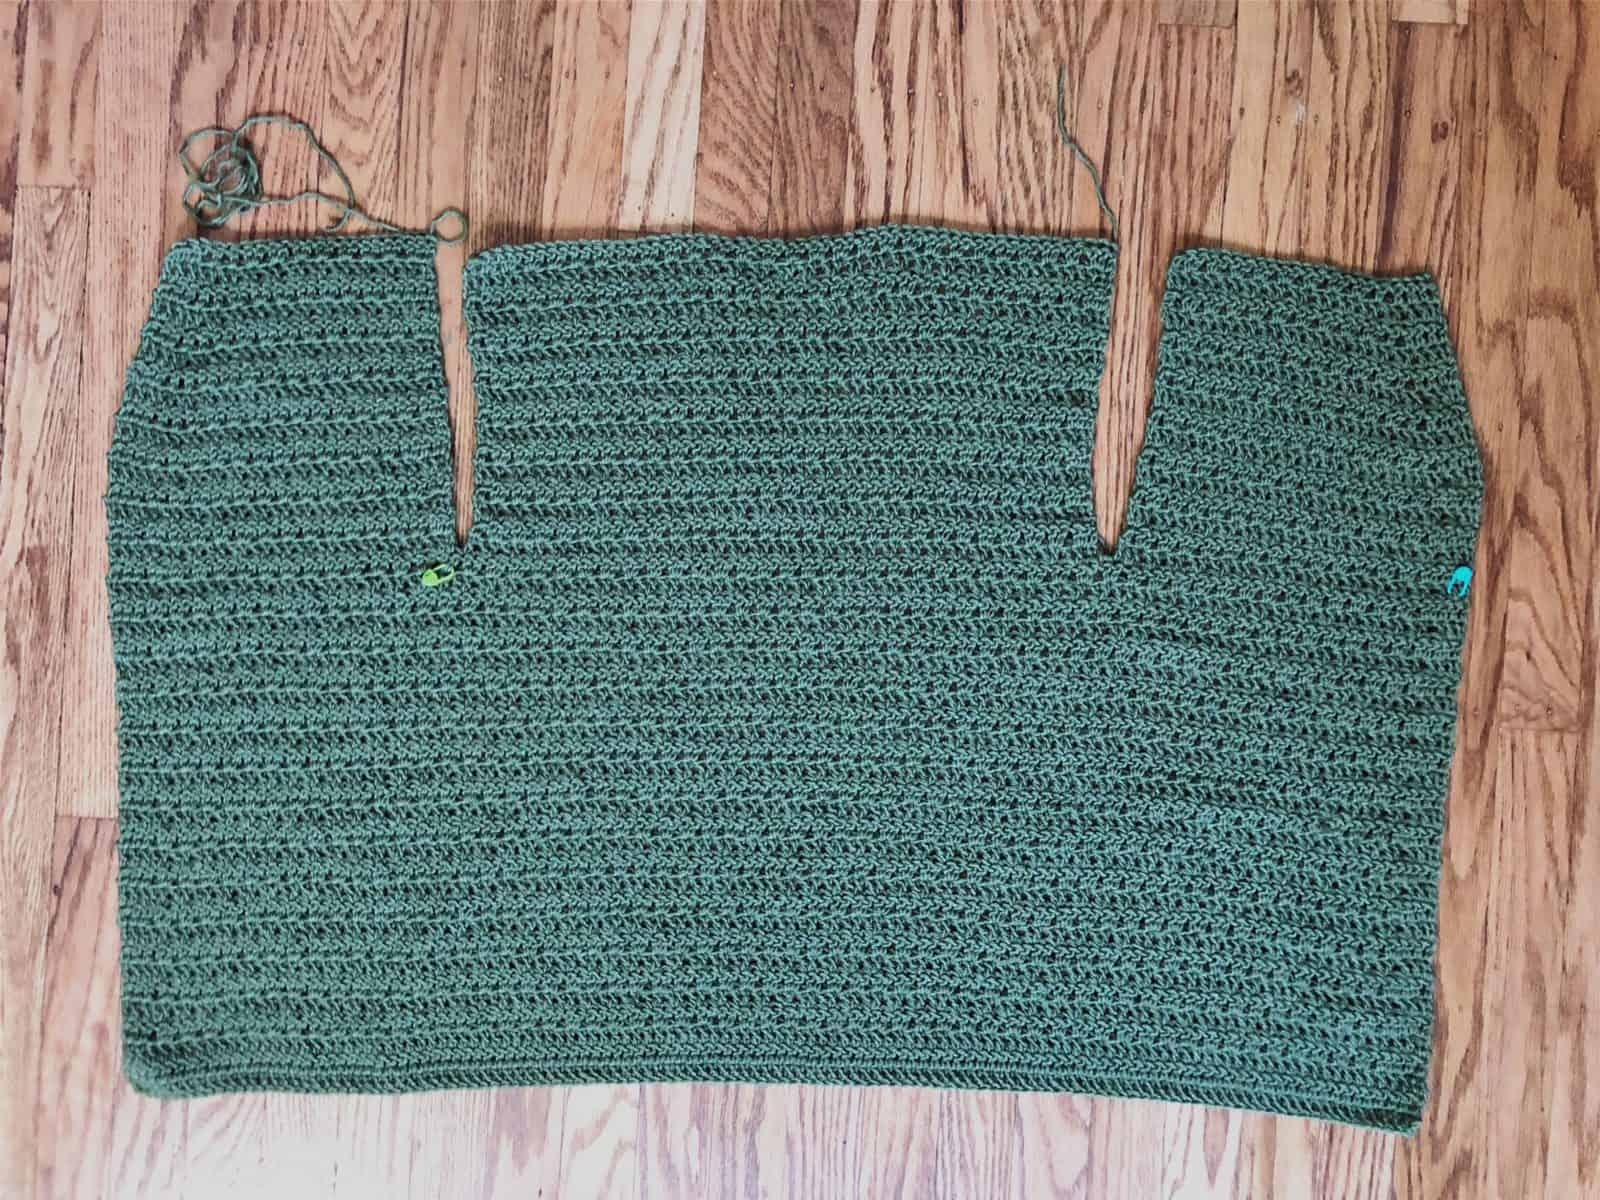 picture of crochet cardigan divided for back and front panels on wood floor